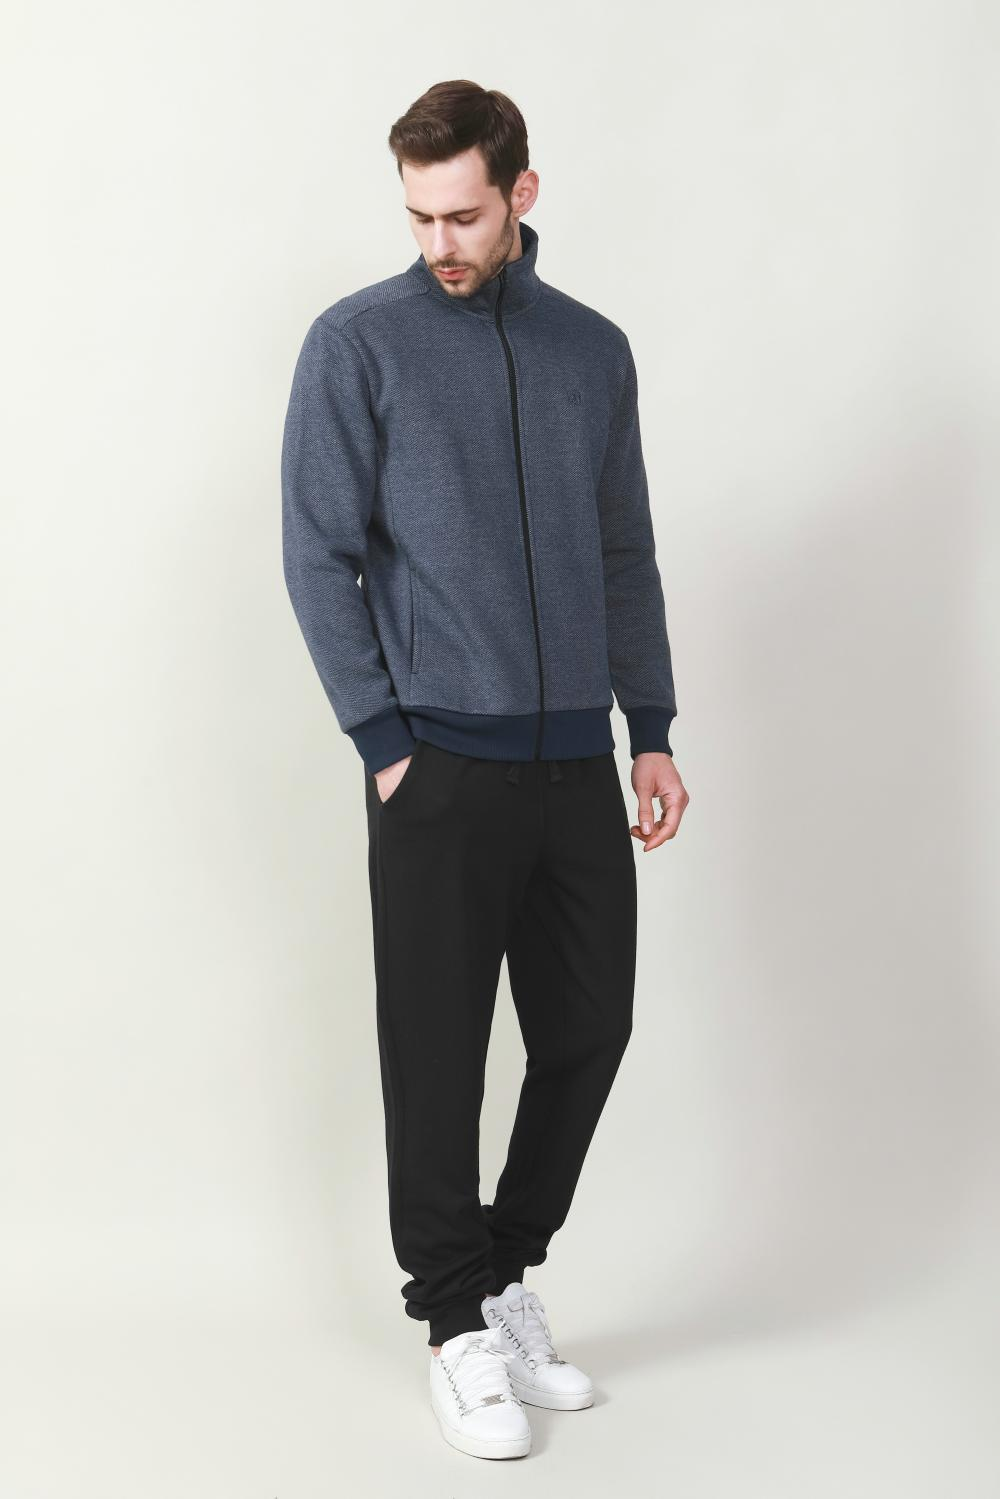 Men's black knit pants